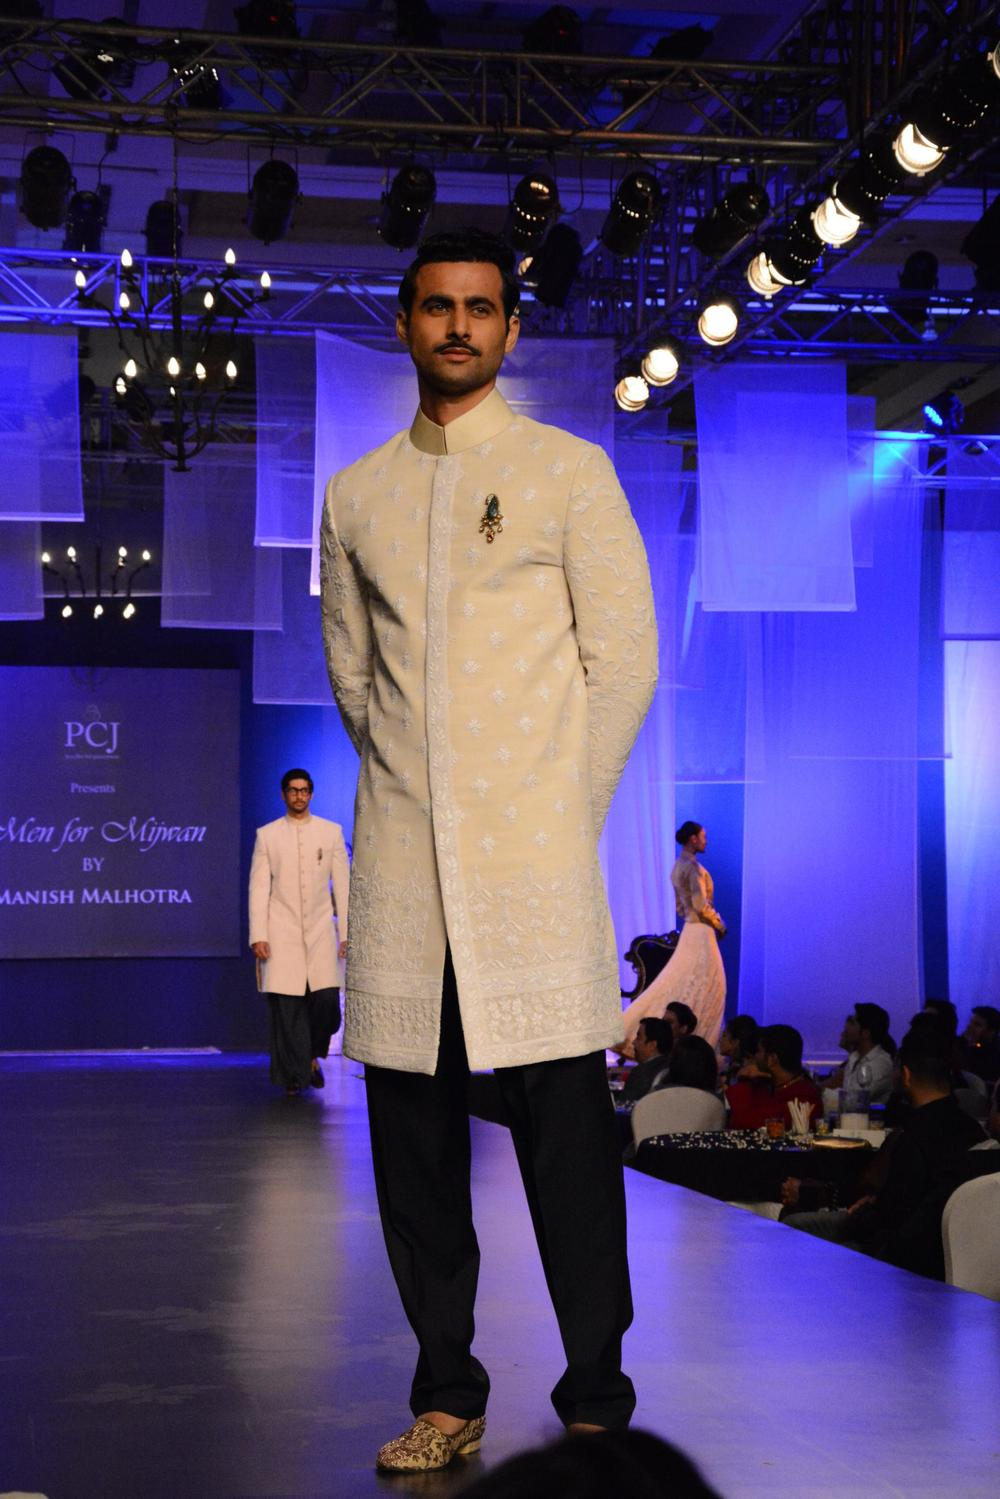 manish-malhotra-men-mijwan-16.JPG